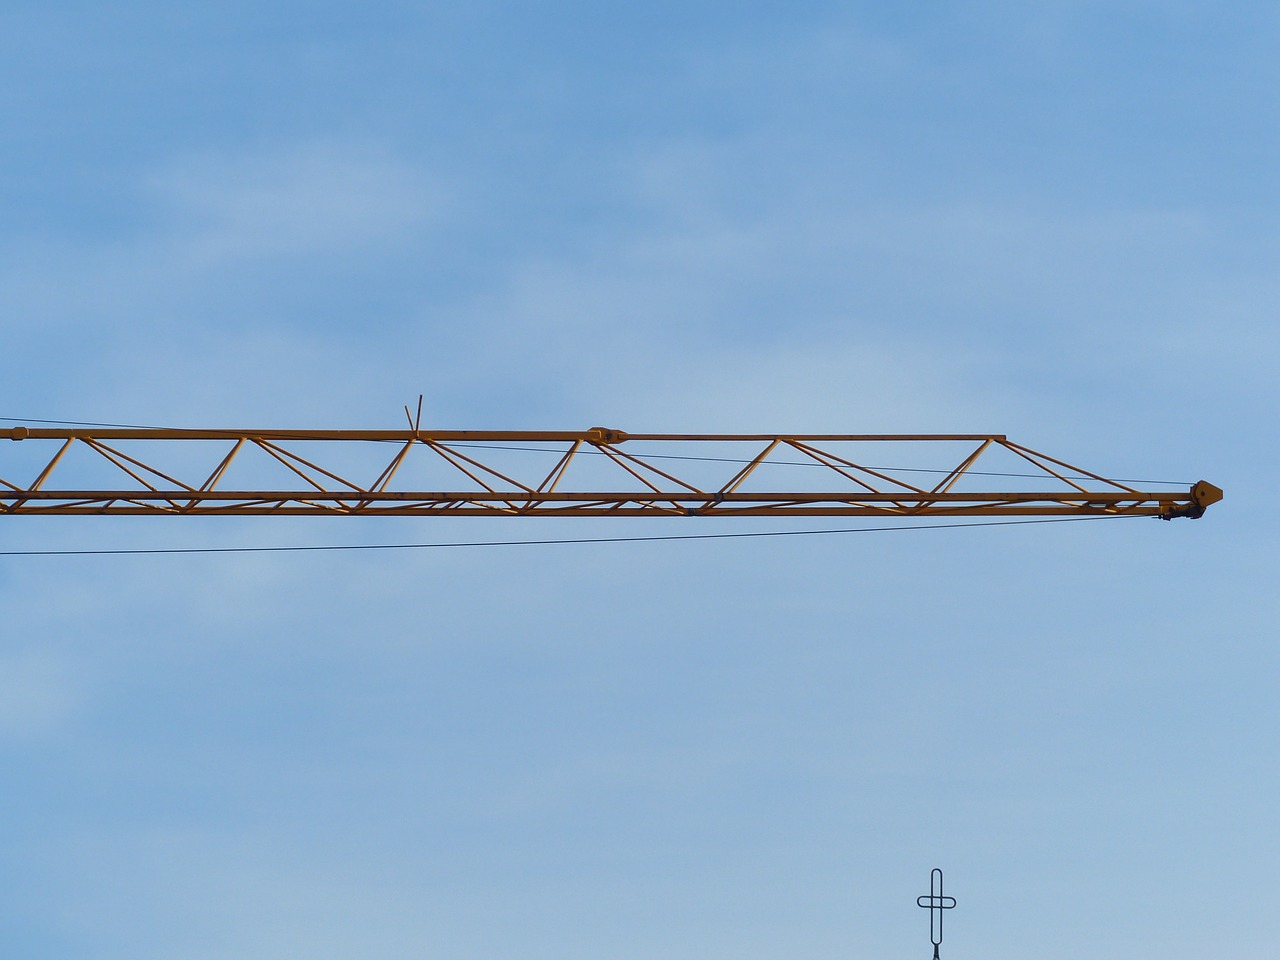 crane baukran site free photo